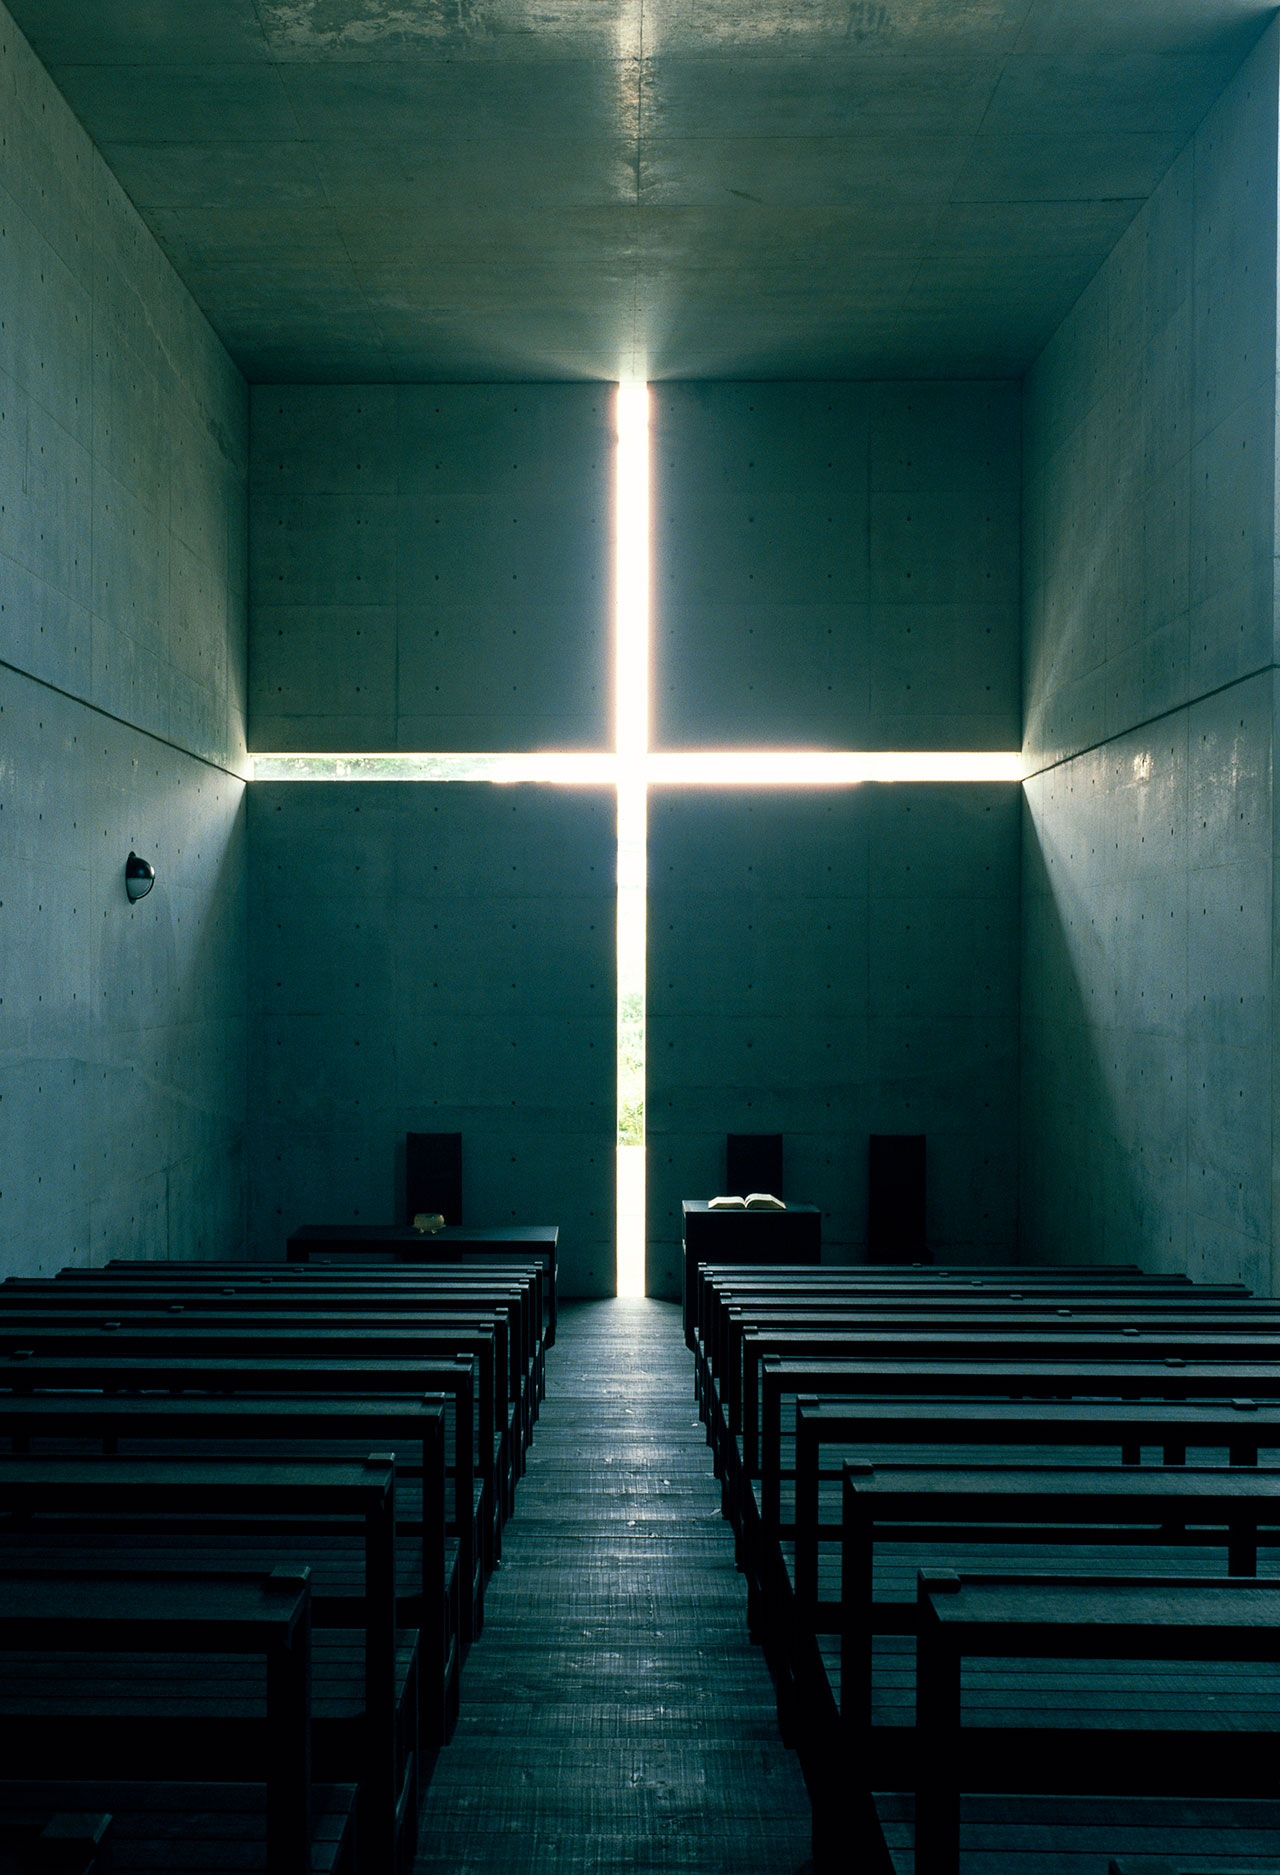 光の教会 (1989) 大阪府茨木市 撮影: 松岡満男 / Church of the Light (1989) Ibaraki, Osaka Photo: Mitsuo Matsuoka